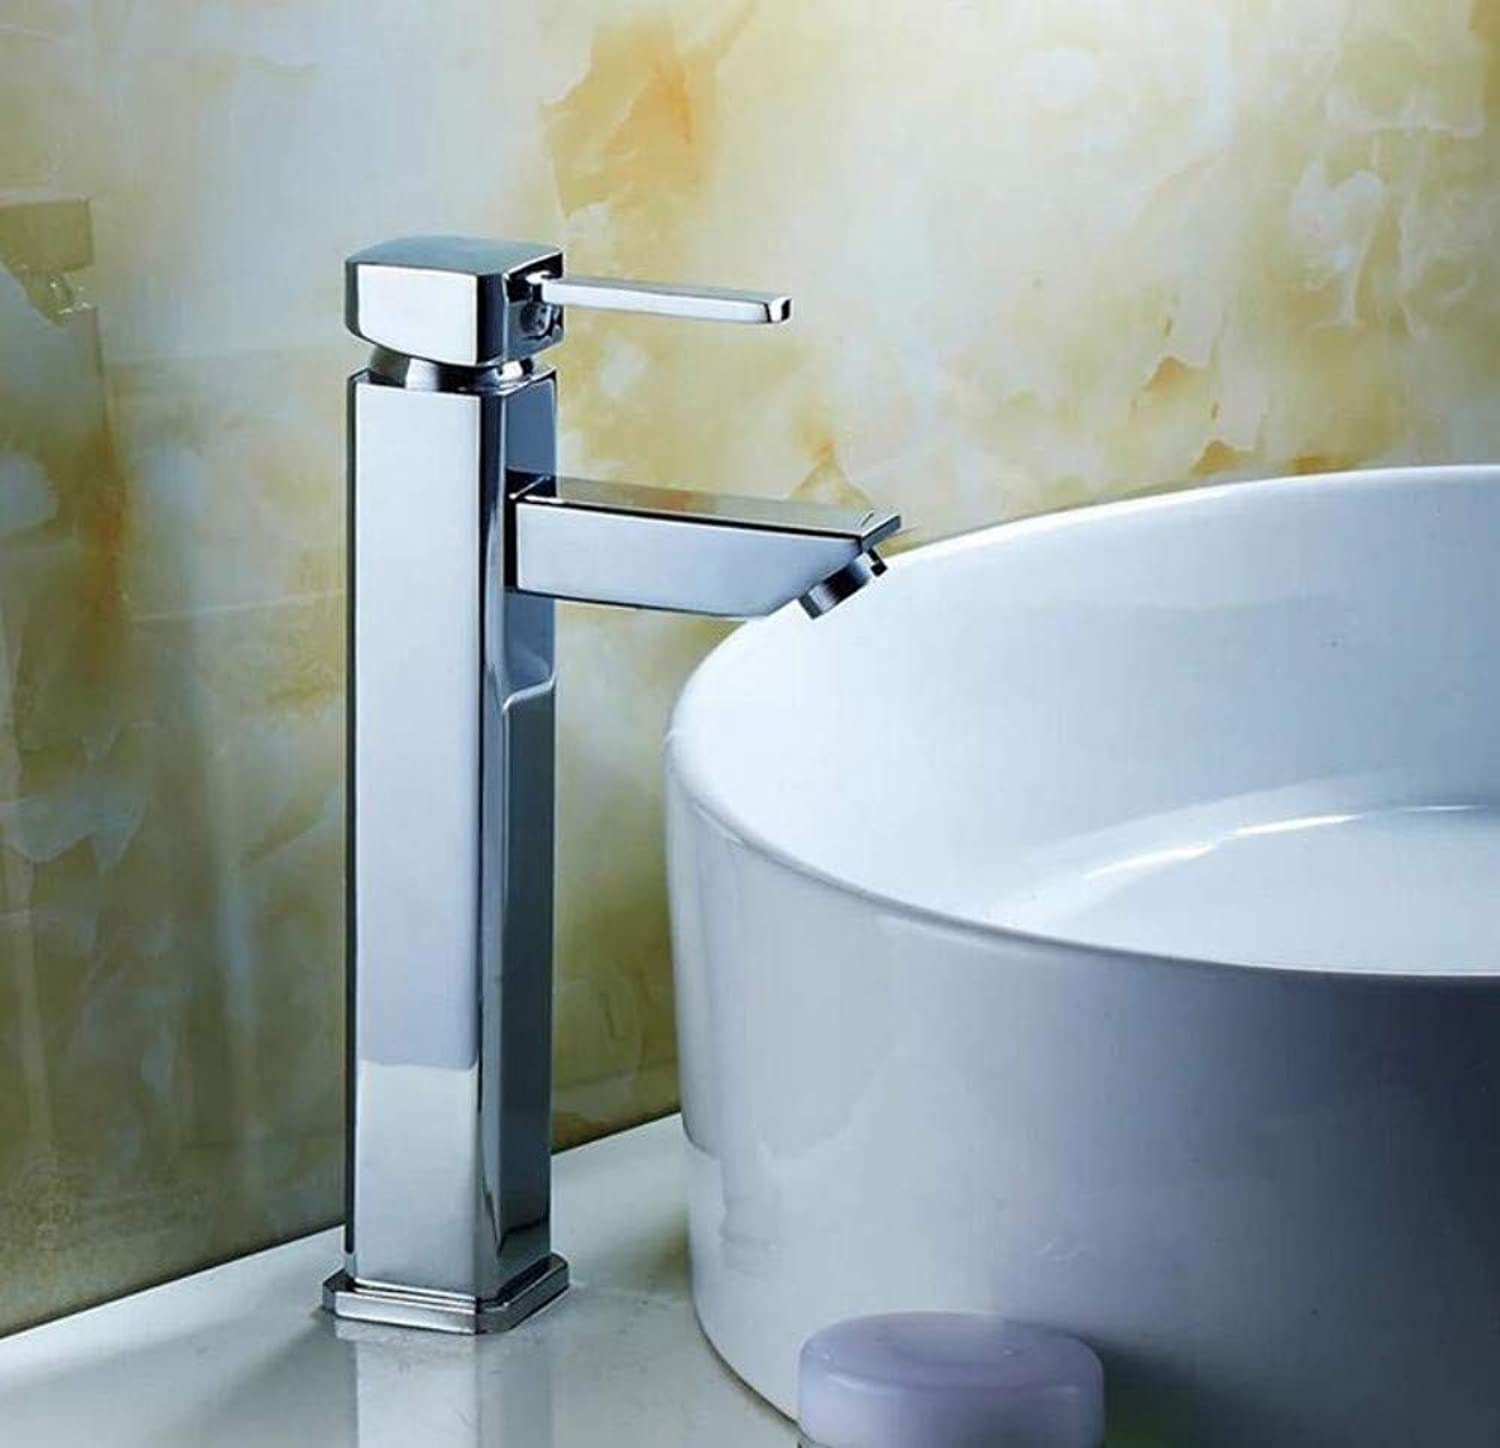 Brass Hot and Cold Chrome Plating Hot and Cold Mixer Water Tap Basin Kitchen Bathroom Wash Basin Faucet